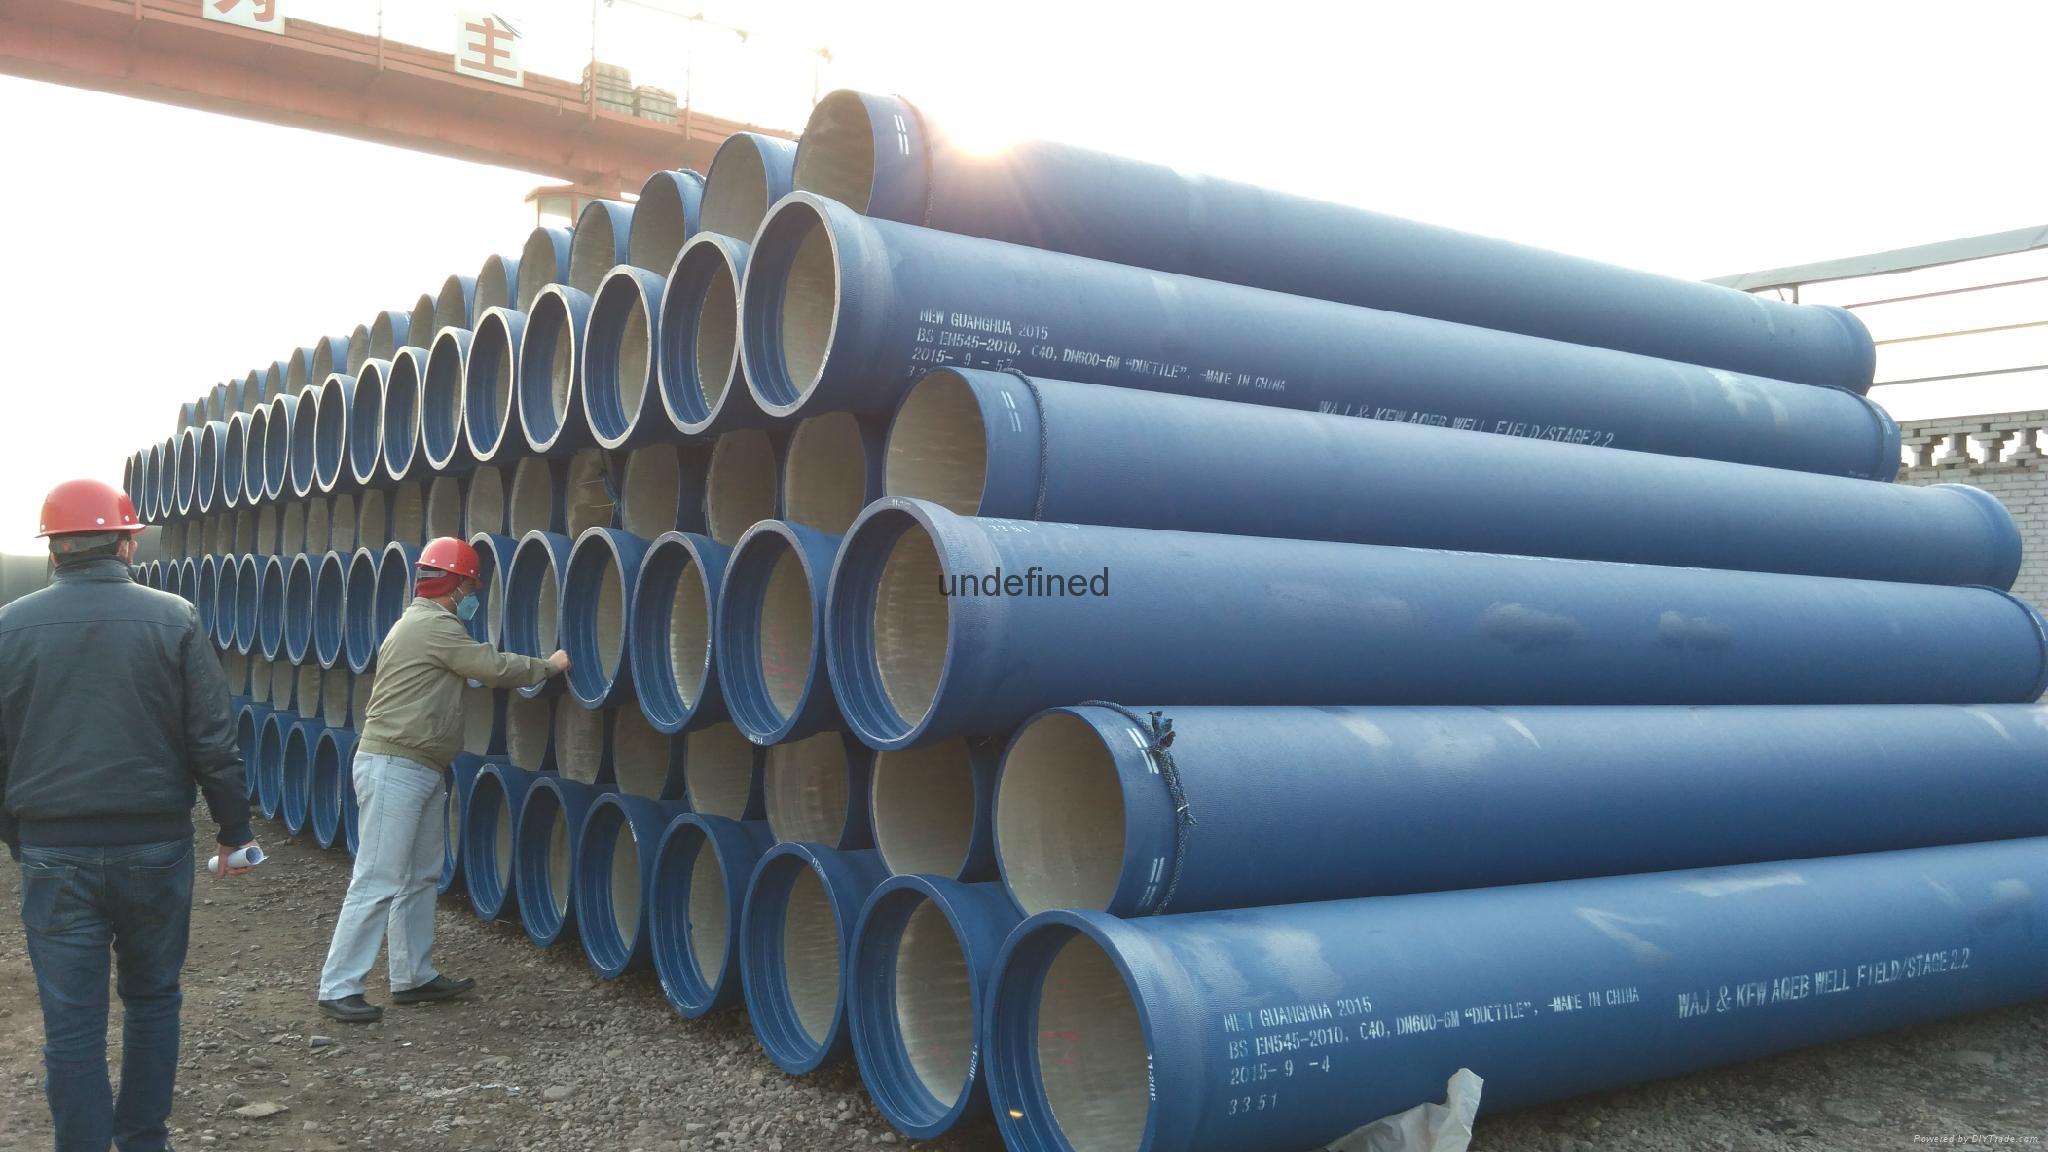 Cement lined Ductile Iron Pipes 1